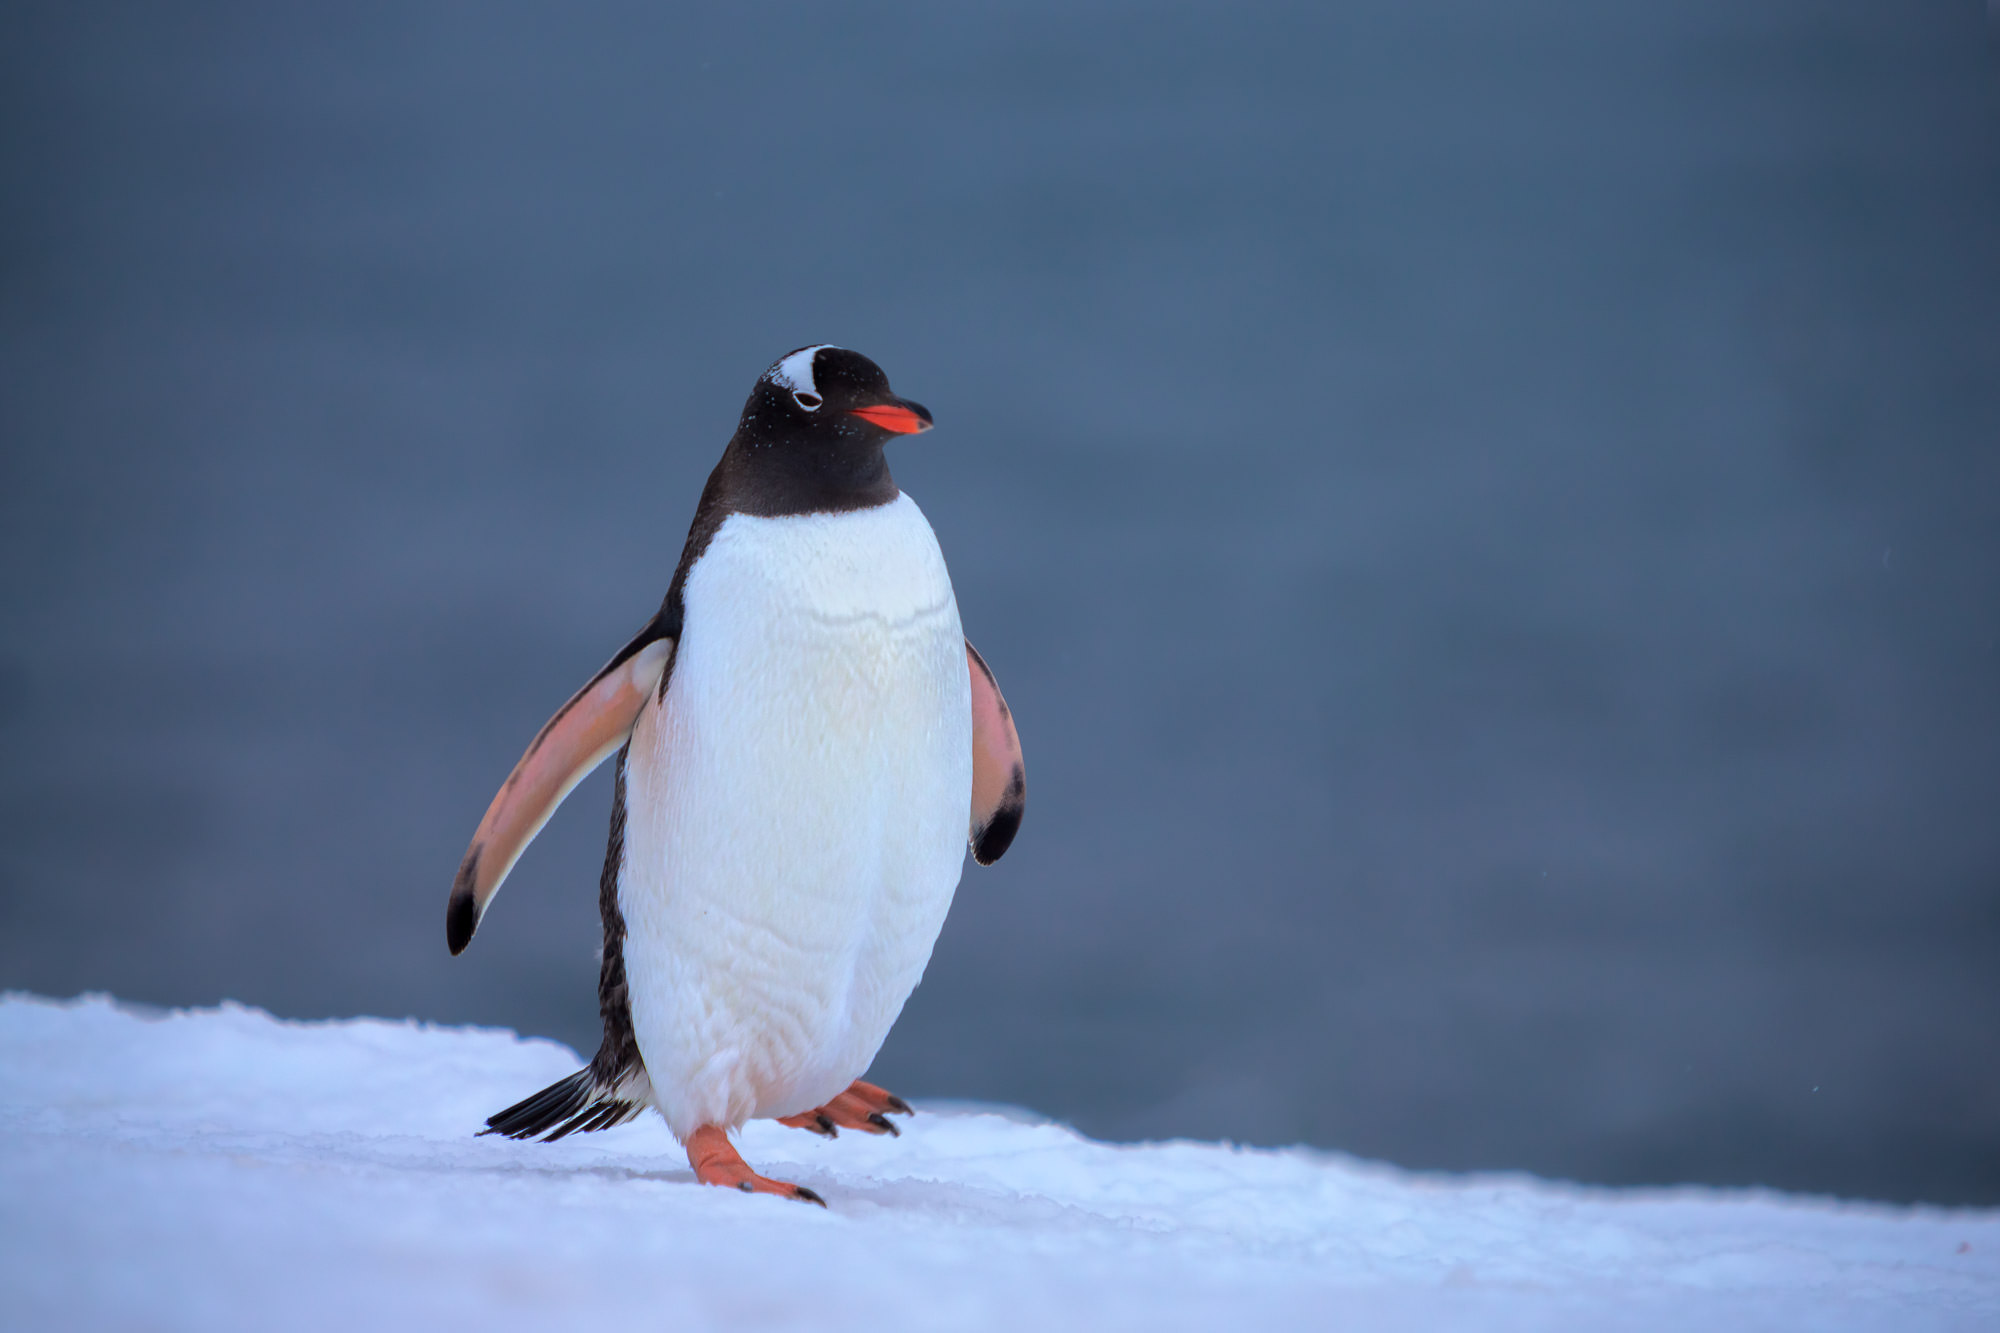 Penguin Fine Art Photography A Limited Edition photograph of a Gentoo Penguin doing some high stepping in the deep snow in Antarctica...